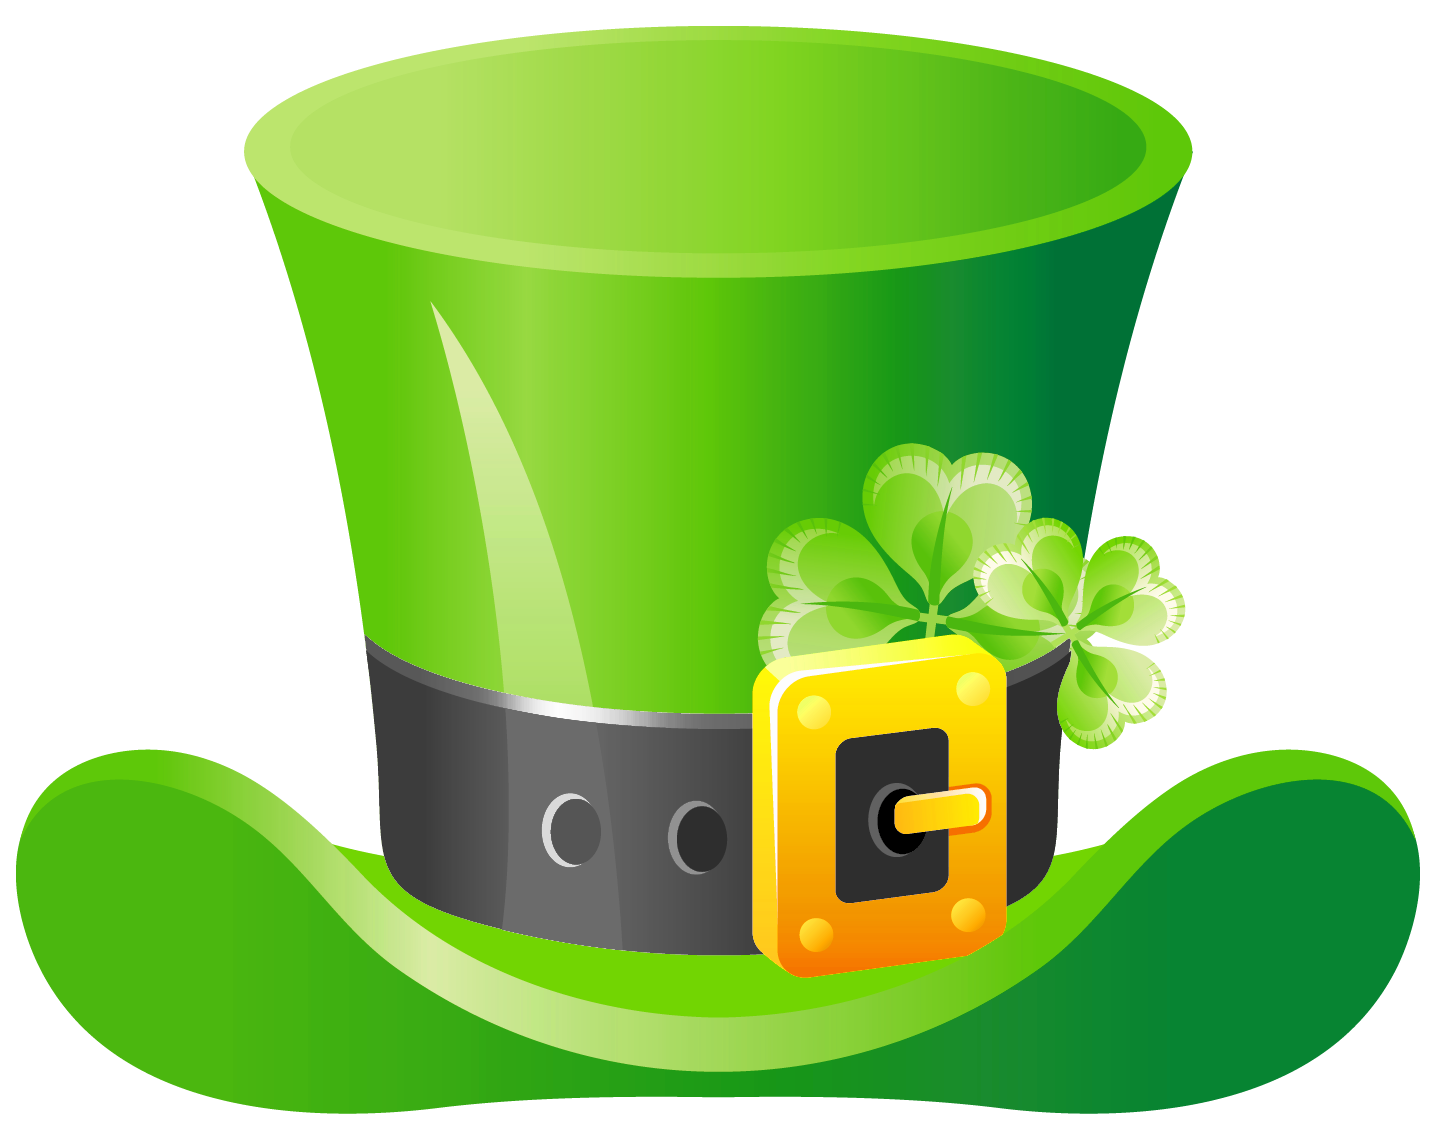 jpg free download Patricks day happy images. St patrick clipart